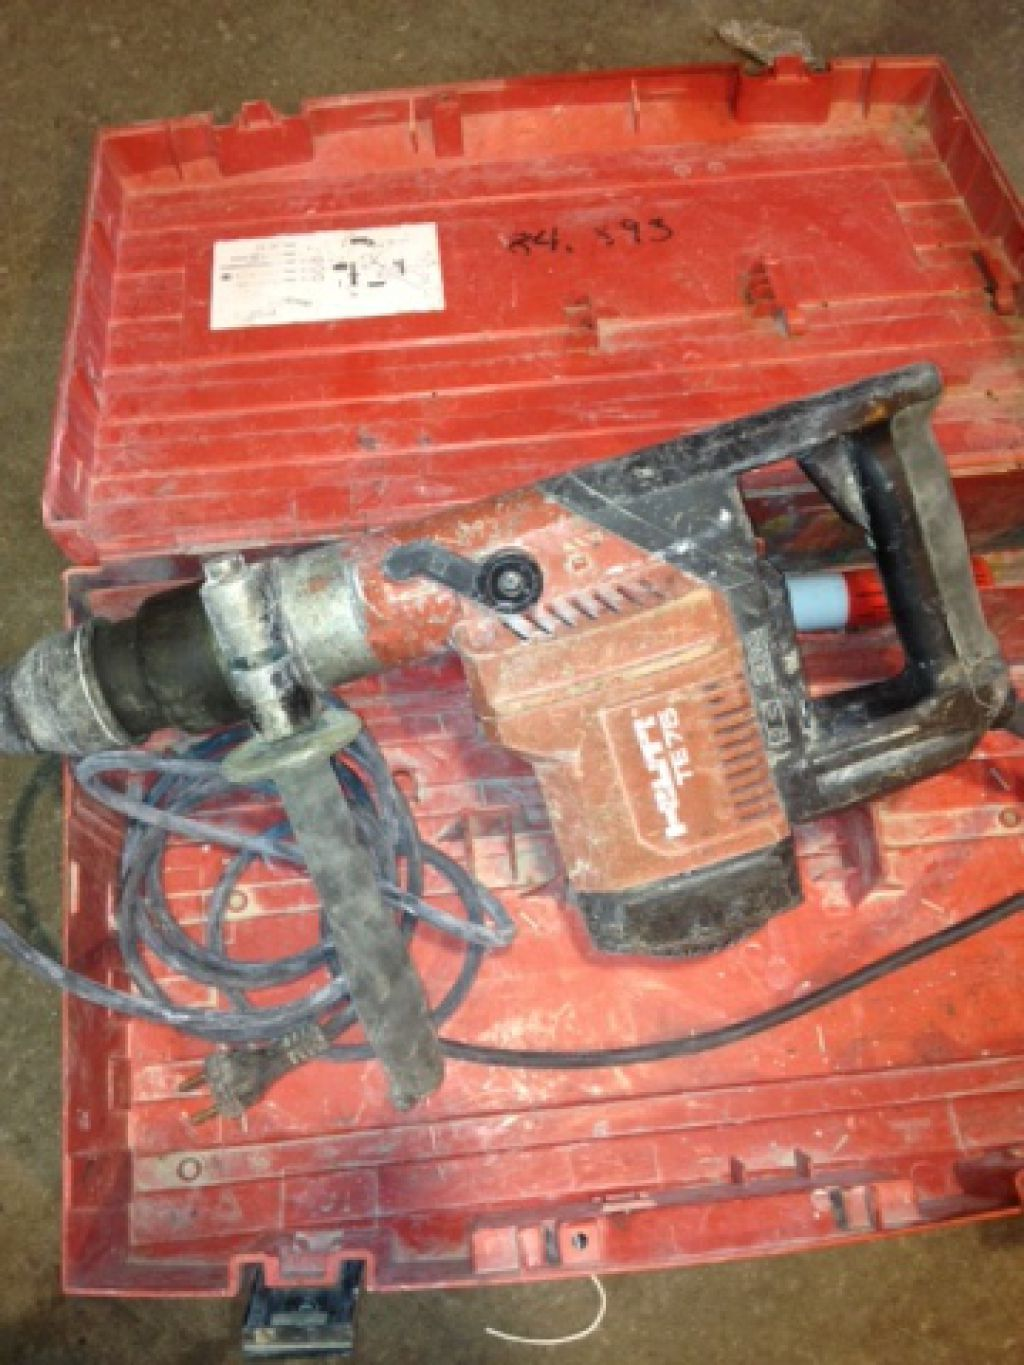 hilti te75 for sale retrade offers used machines vehicles equipment and surplus material. Black Bedroom Furniture Sets. Home Design Ideas